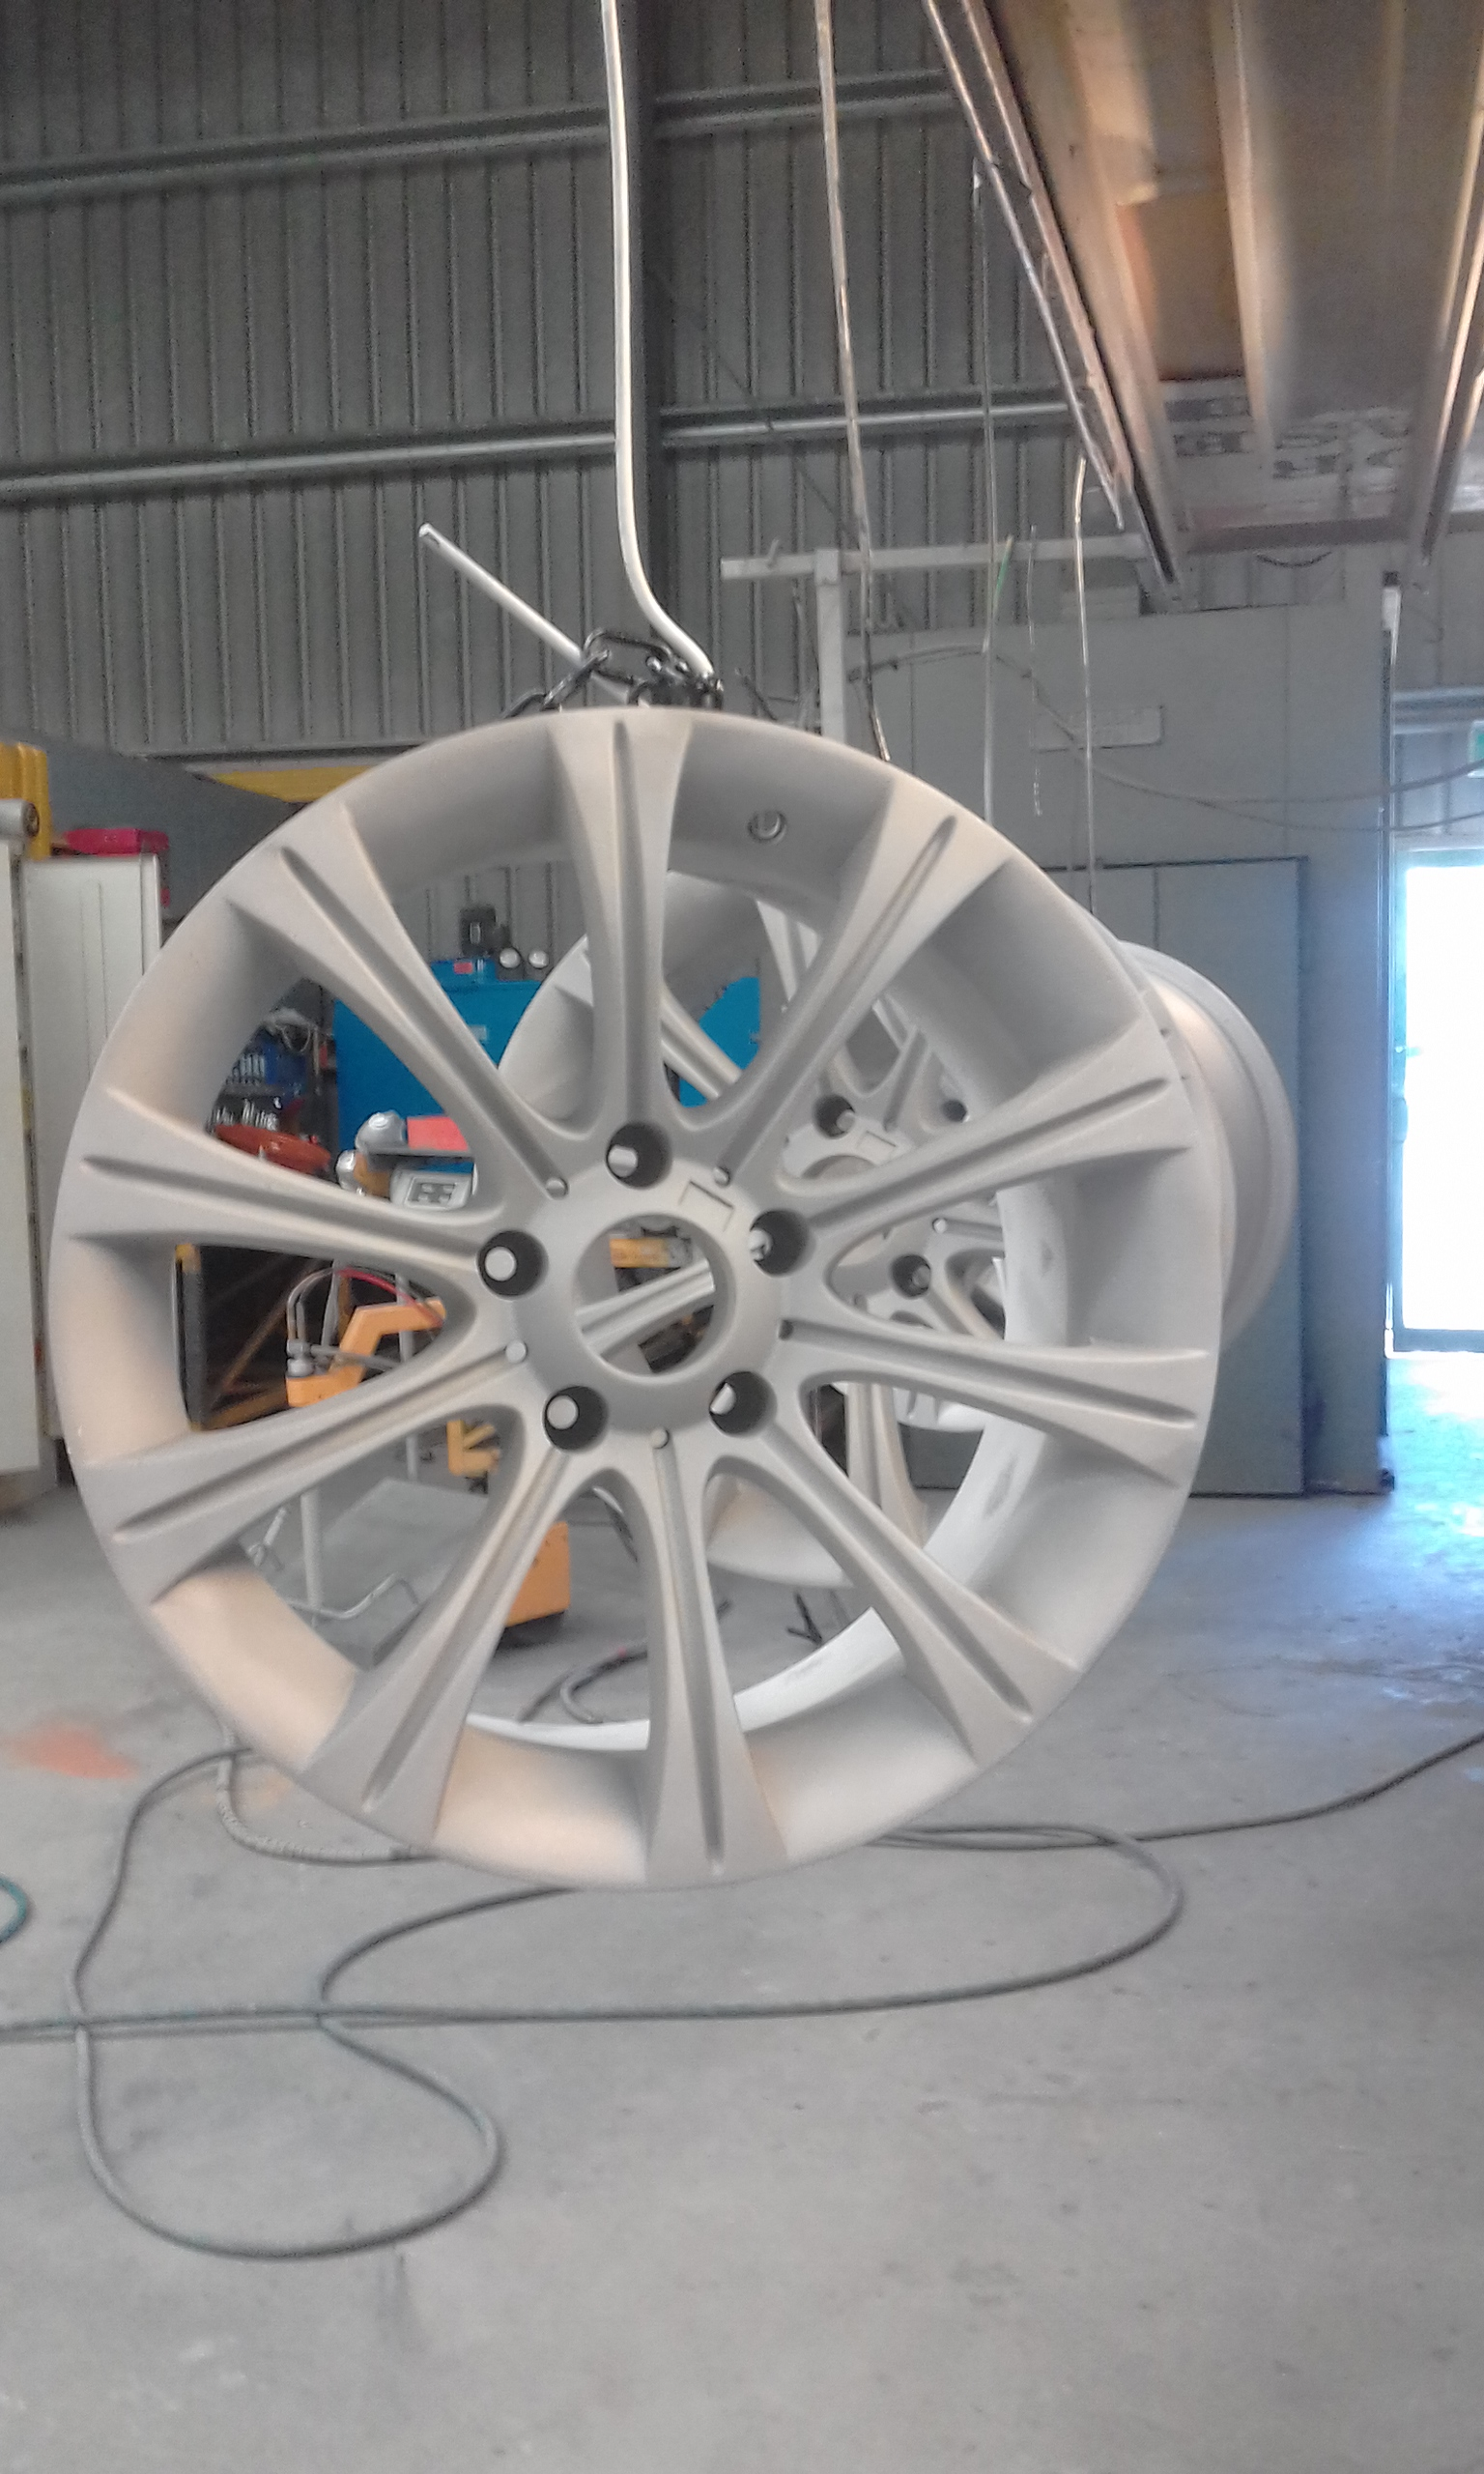 Abrasive blasting - Race wheels